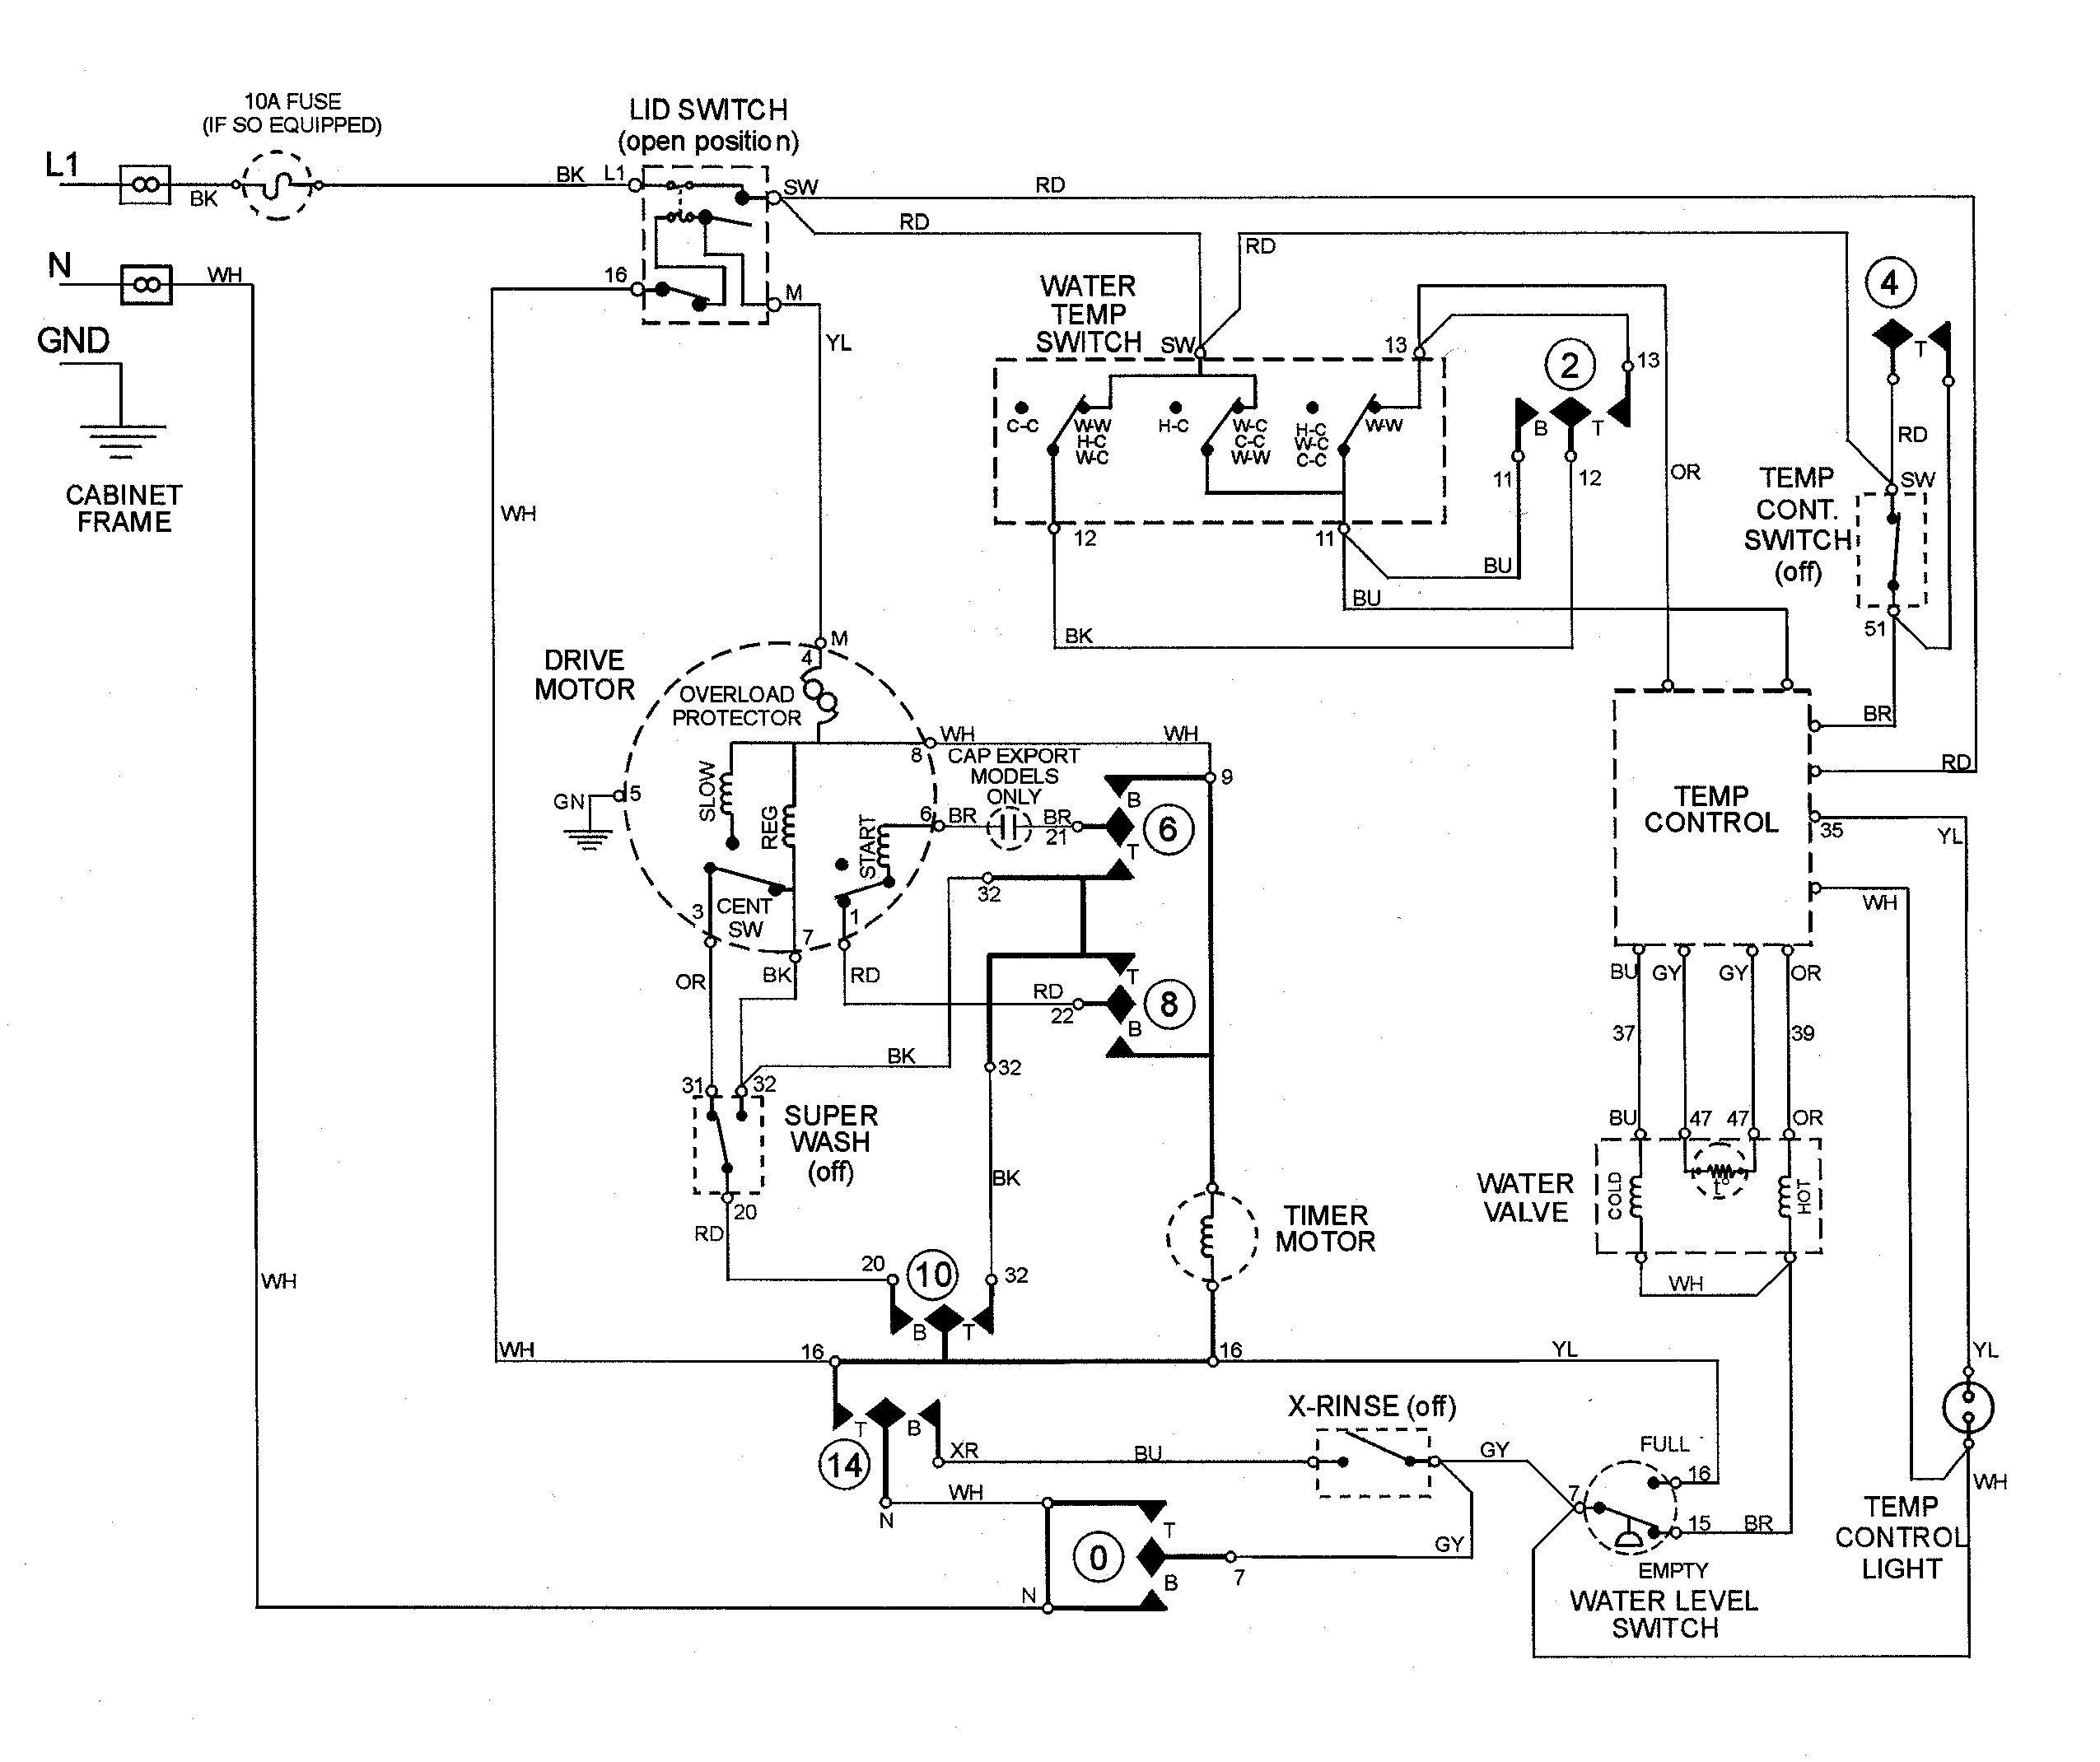 Ge Motor Starter Wiring Diagram Wire Diagrams Emc Elegant Image Ecm For Dryer